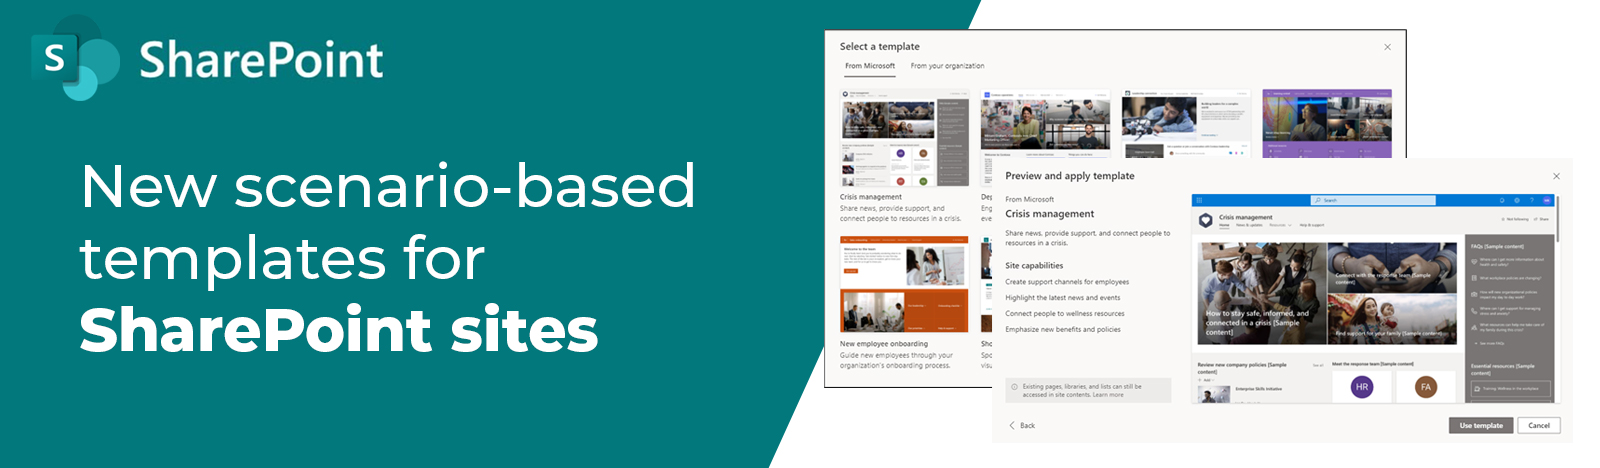 New scenario-based templates for SharePoint sites